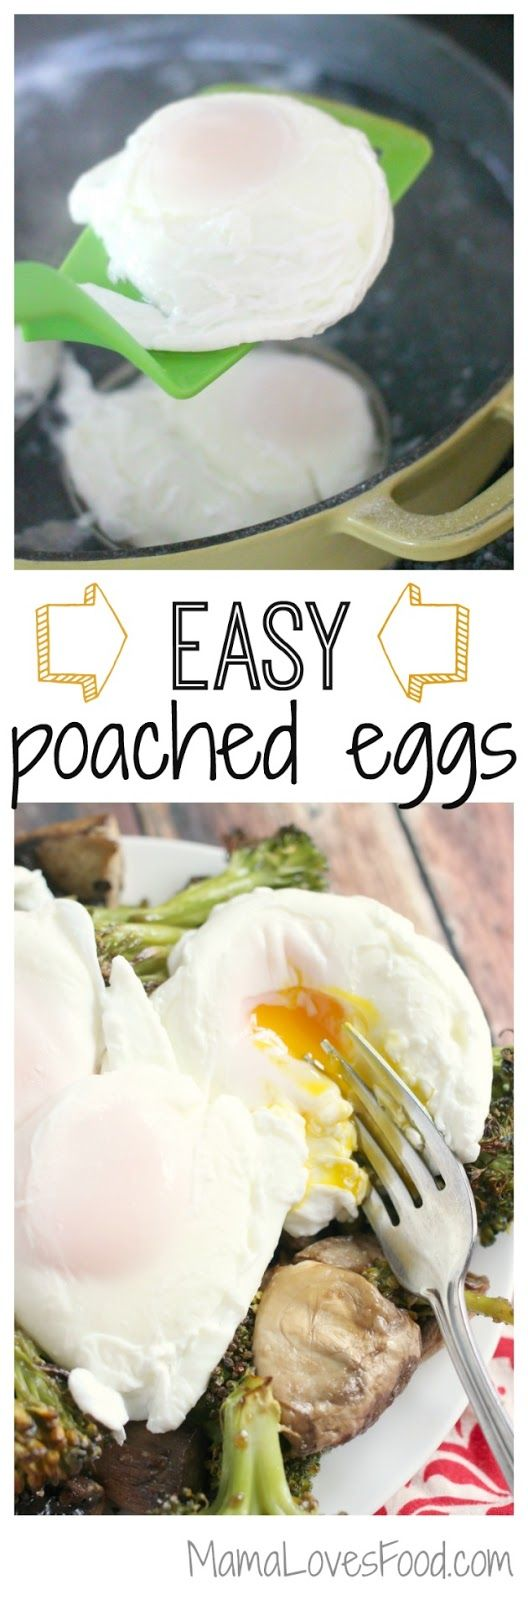 Easy Poached Eggs.